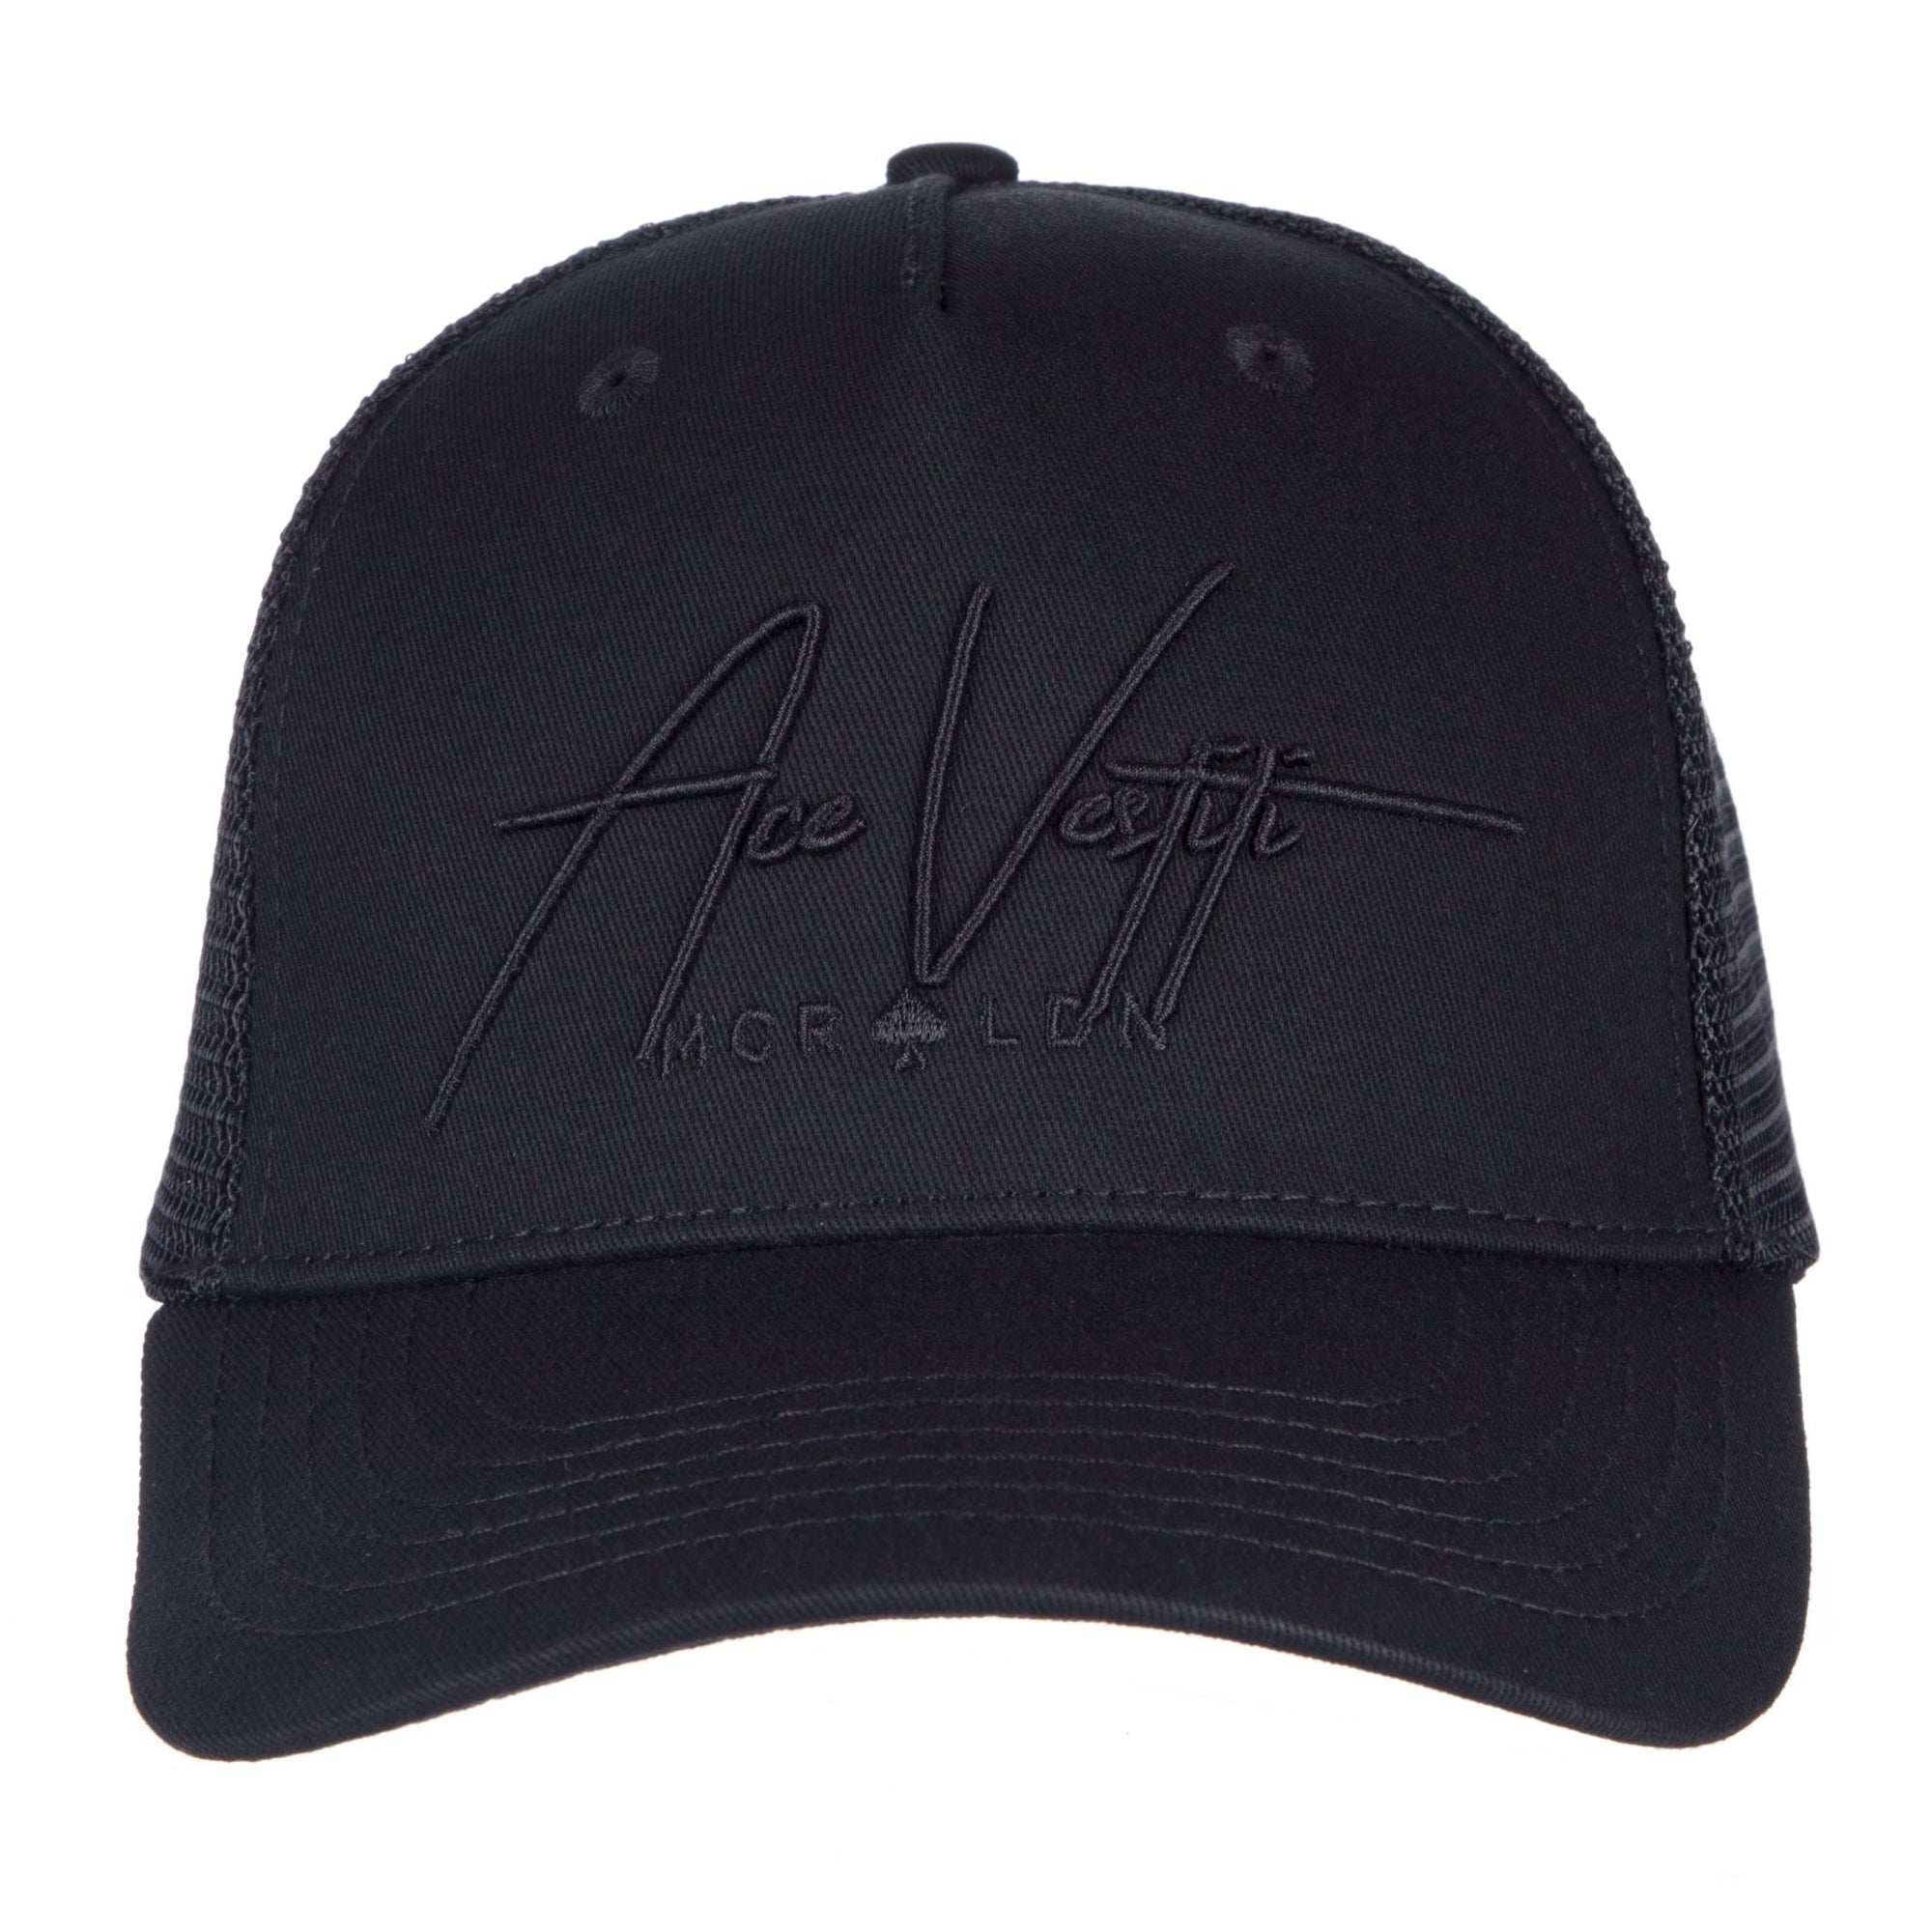 All Black Signature Trucker - ACE VESTITI